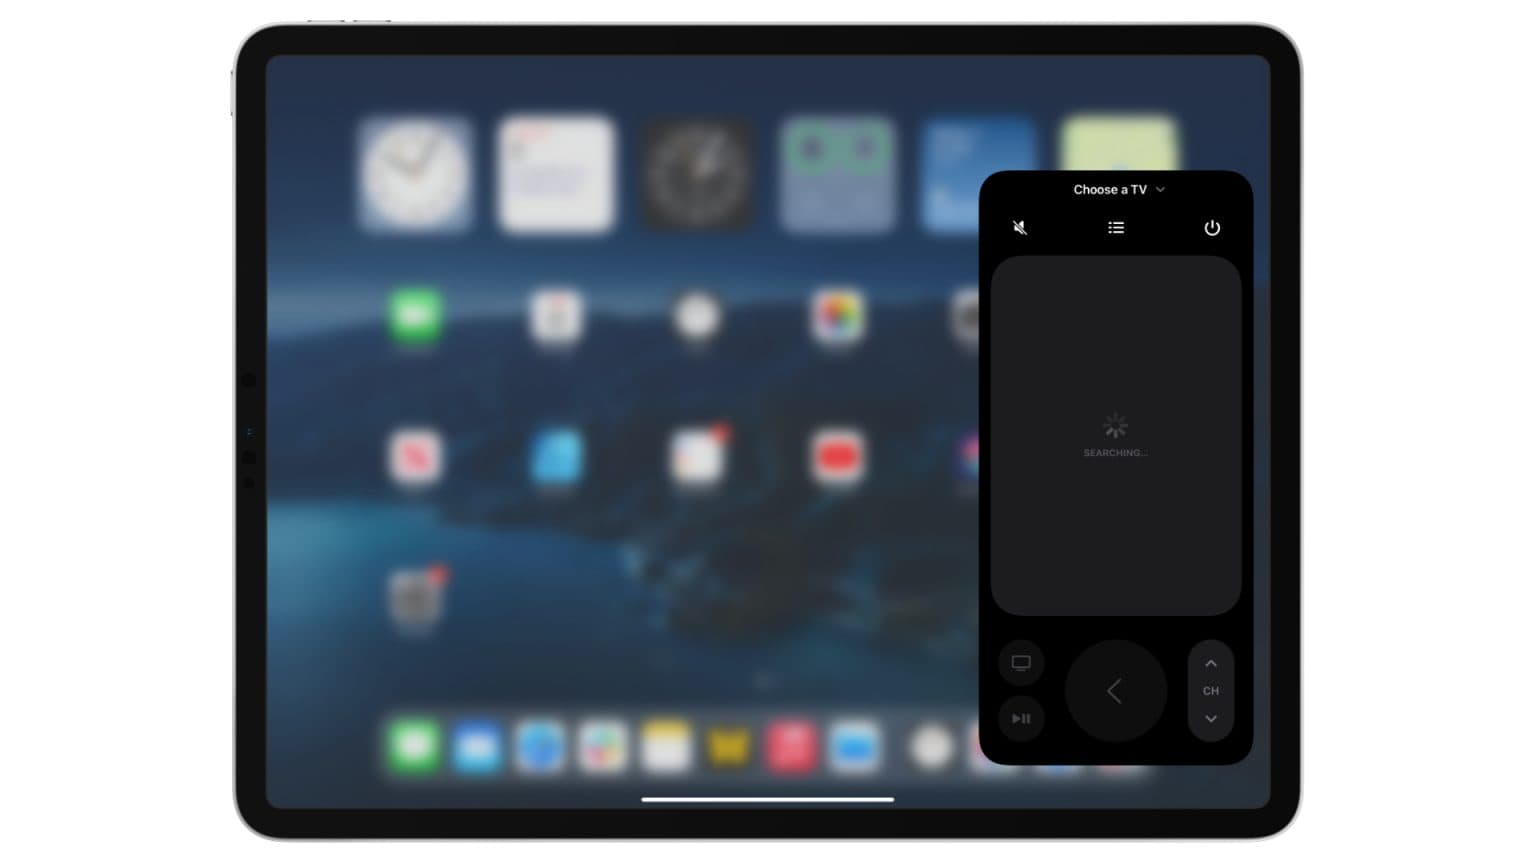 New Apple TV Remote in iOS 15